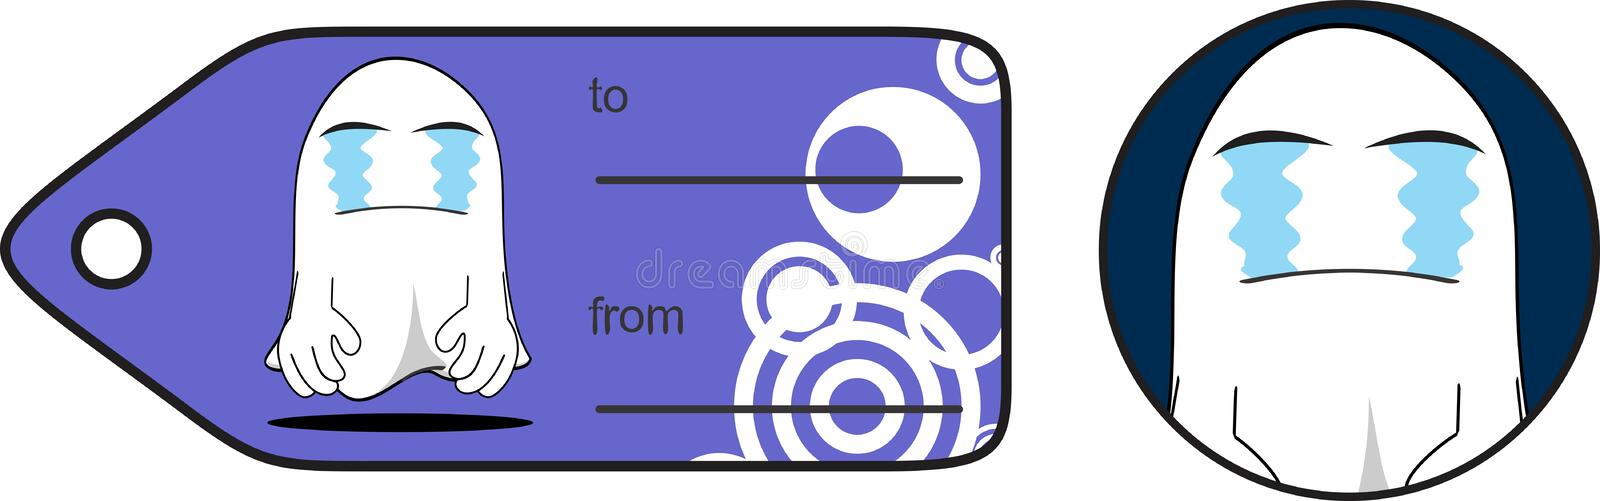 Crying ghost cartoon expression halloween giftcard royalty free illustration